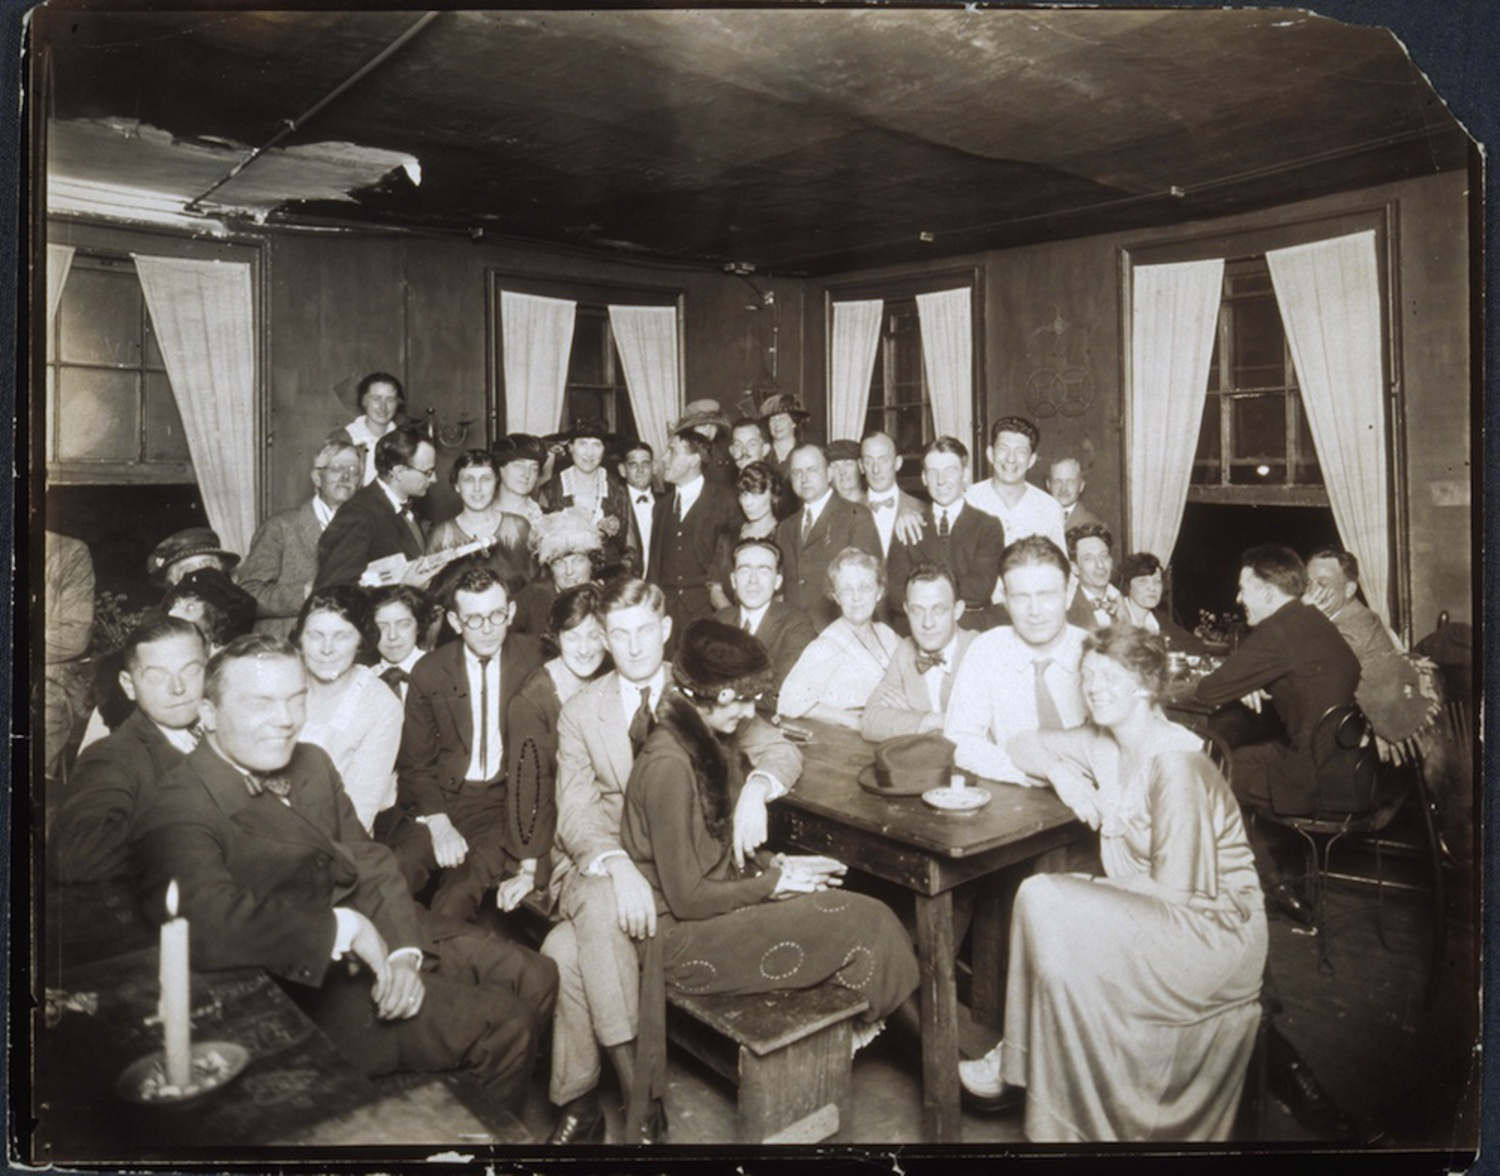 Group portrait, indoors, of people gathered at the Garrett Coffee House, circa 1912-1917; photograph by Jessie Tarbox Beals.